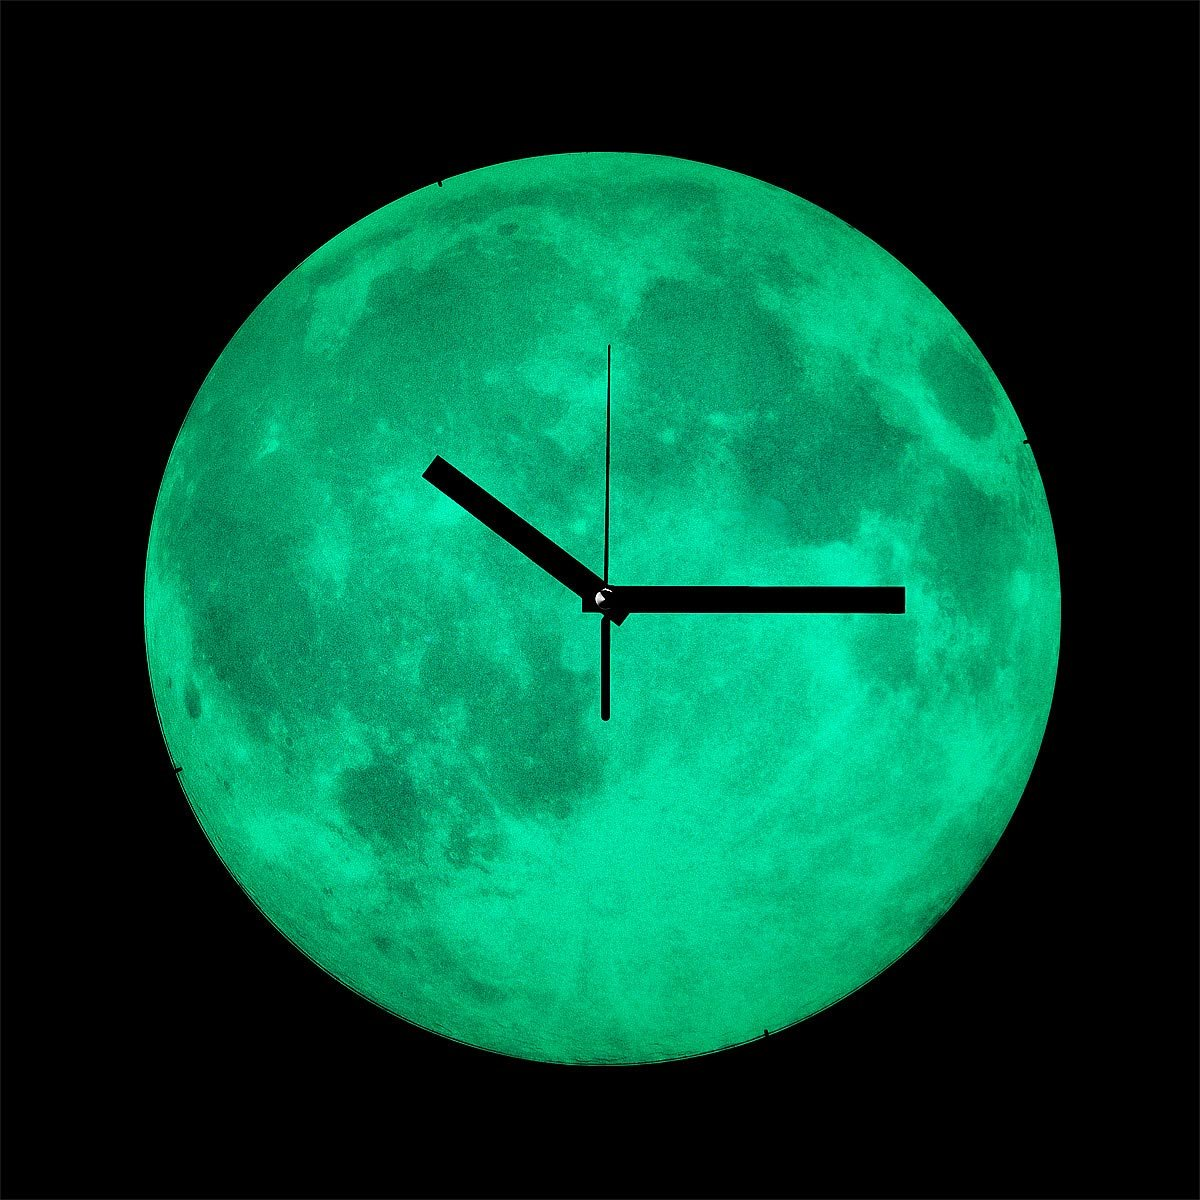 Moon clock glowing lunar clock uncommongoods moon clock 2 thumbnail amipublicfo Images